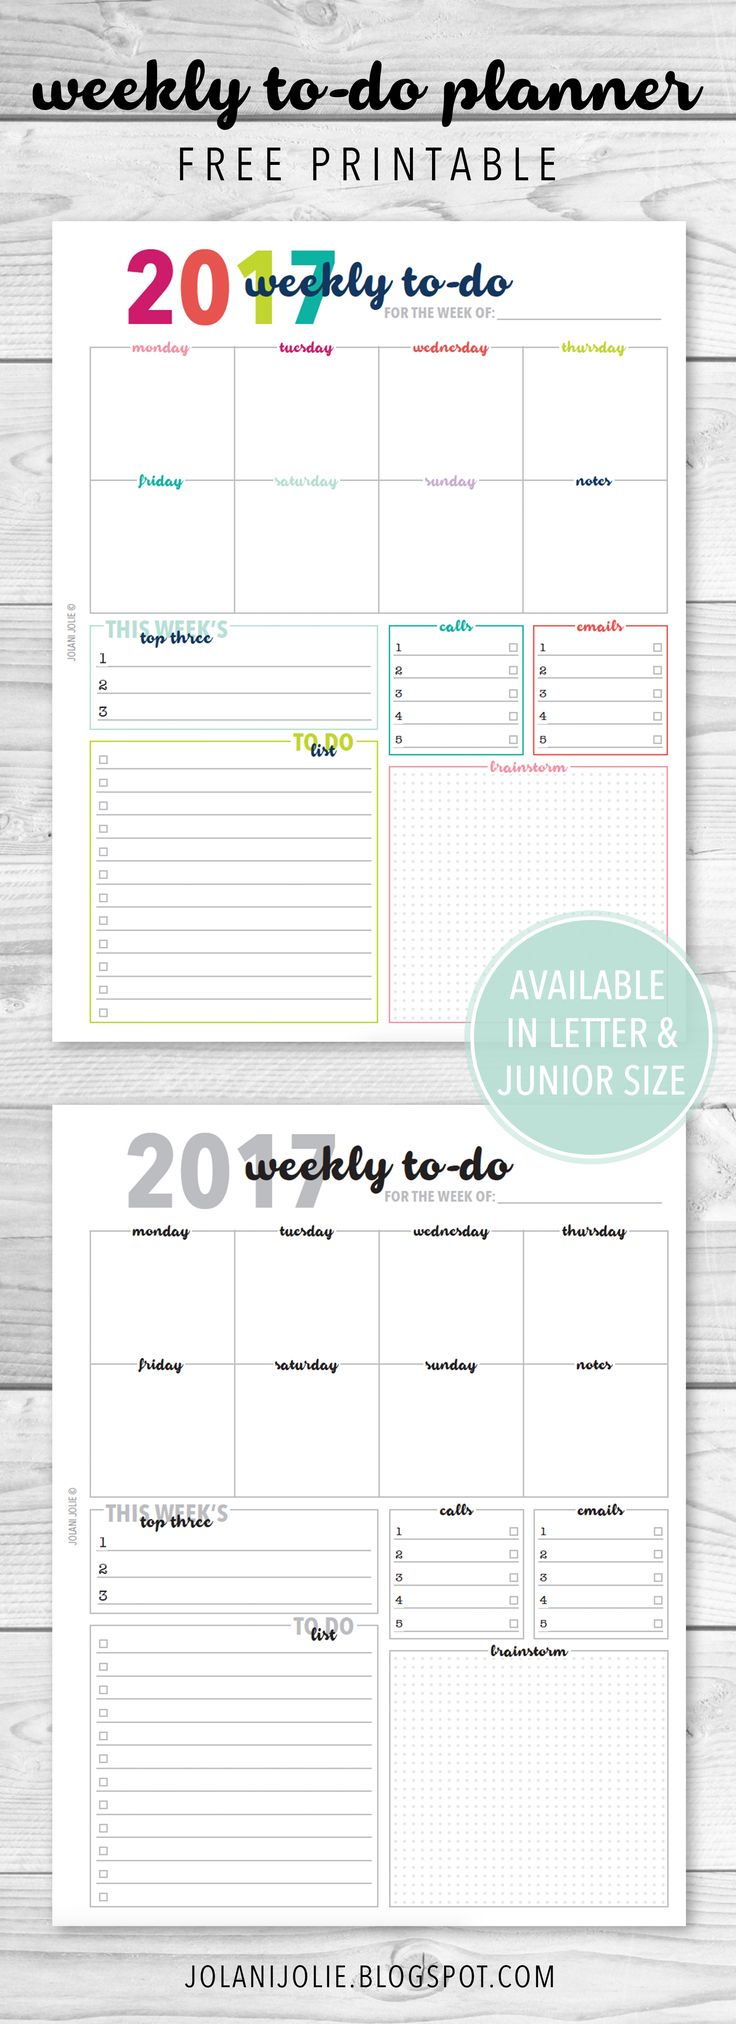 Best 25 free printable planner ideas on pinterest for To do planner online